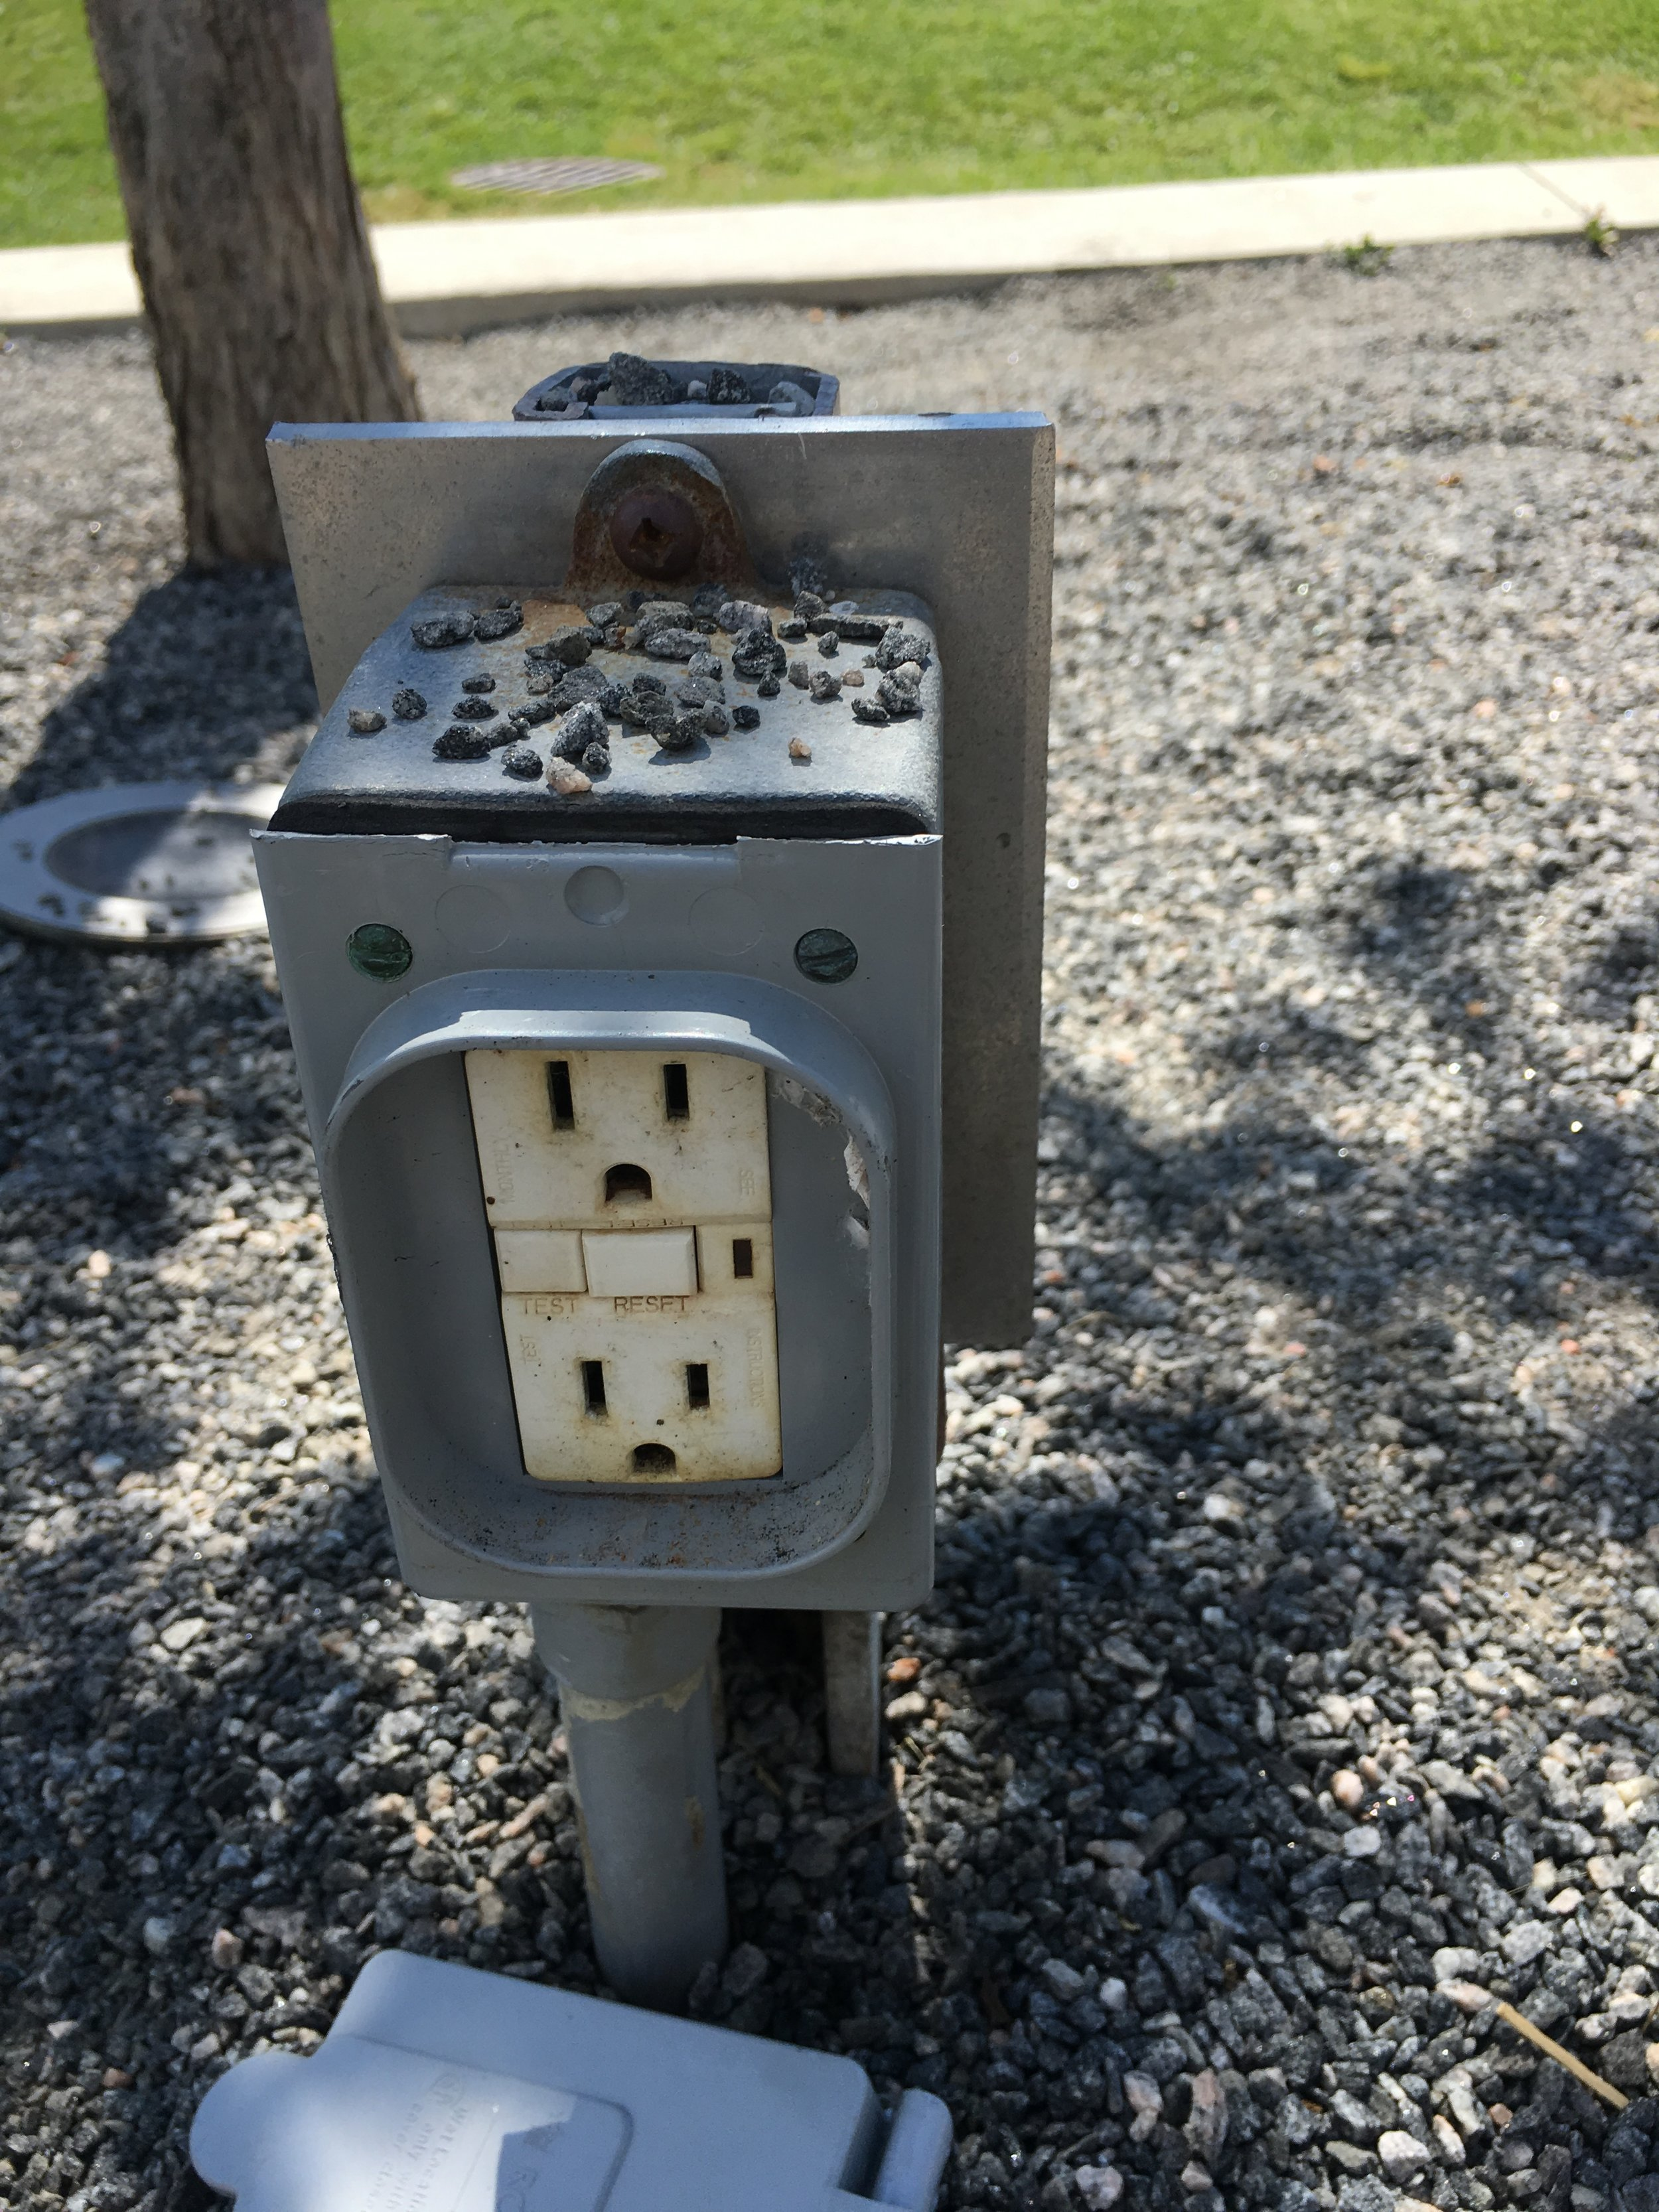 In-ground power outlet at Community Common Park